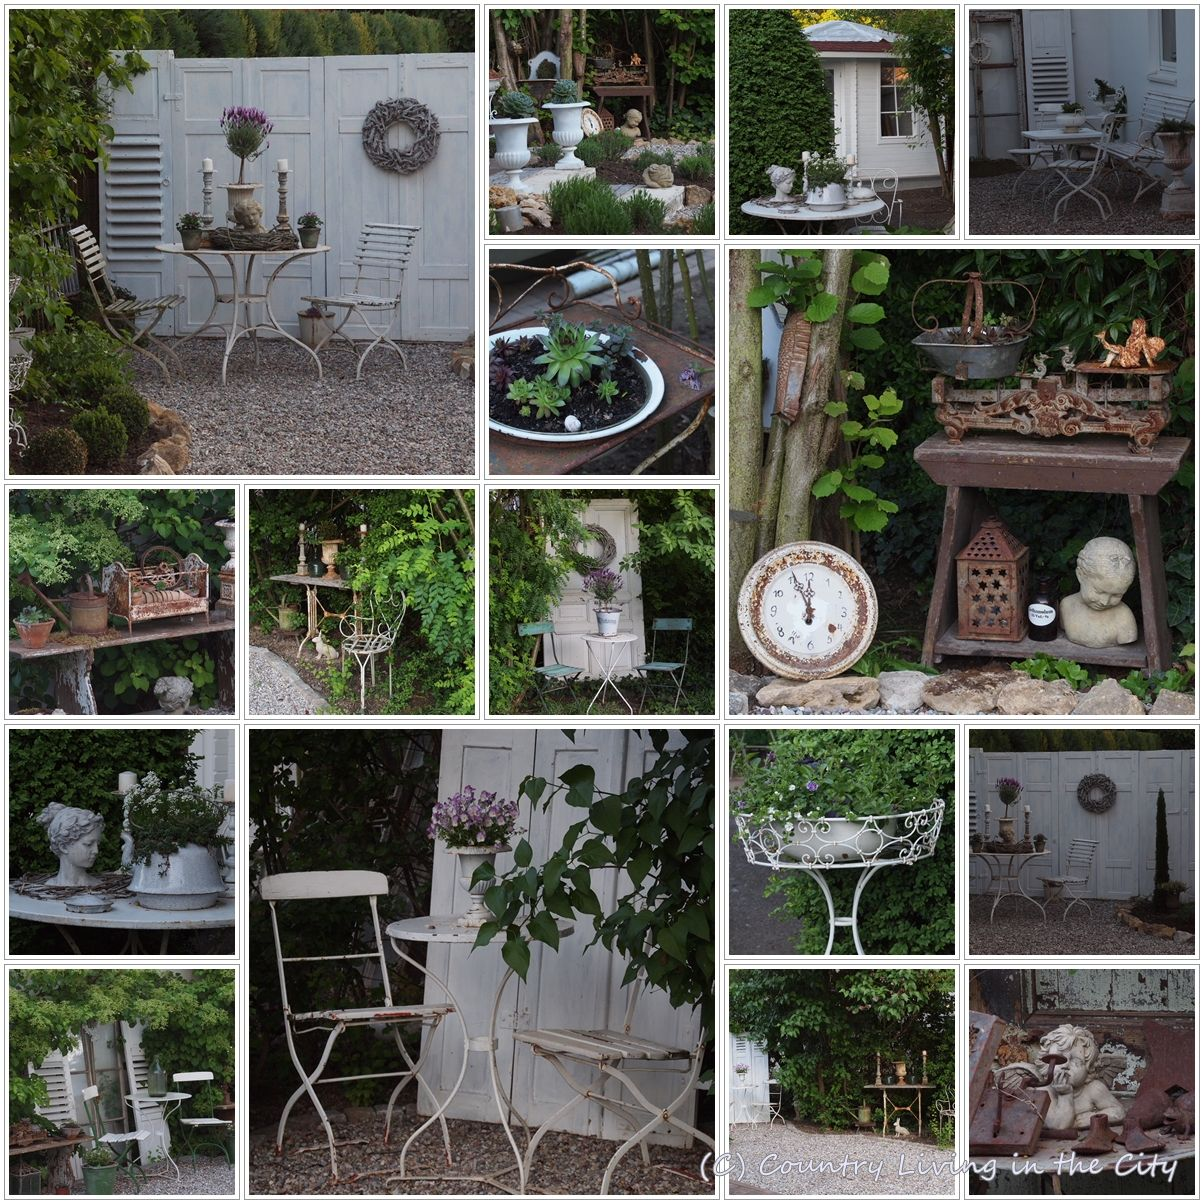 bildergebnis f r shabby garten gestalten garten pinterest gardens. Black Bedroom Furniture Sets. Home Design Ideas